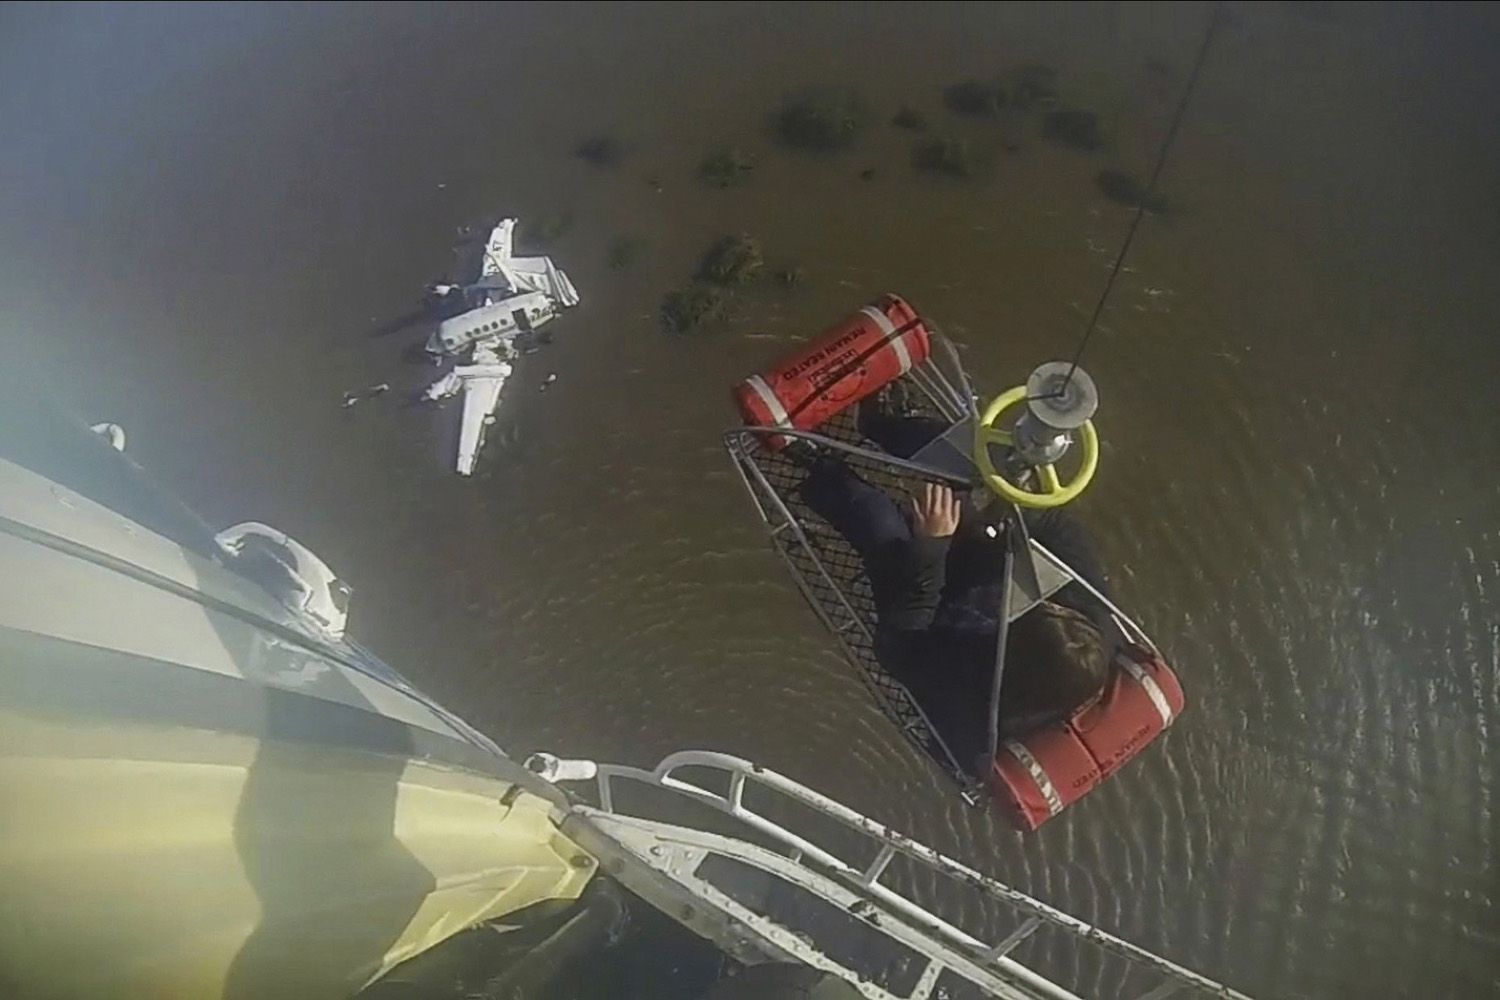 May 27, 2014. An injured person is lifted by a rescue helicopter after a small private plane which took off from San Fernando, Argentina, en route to Carmelo, Uruguay, with nine people on board, crashed into the Rio de La Plata.